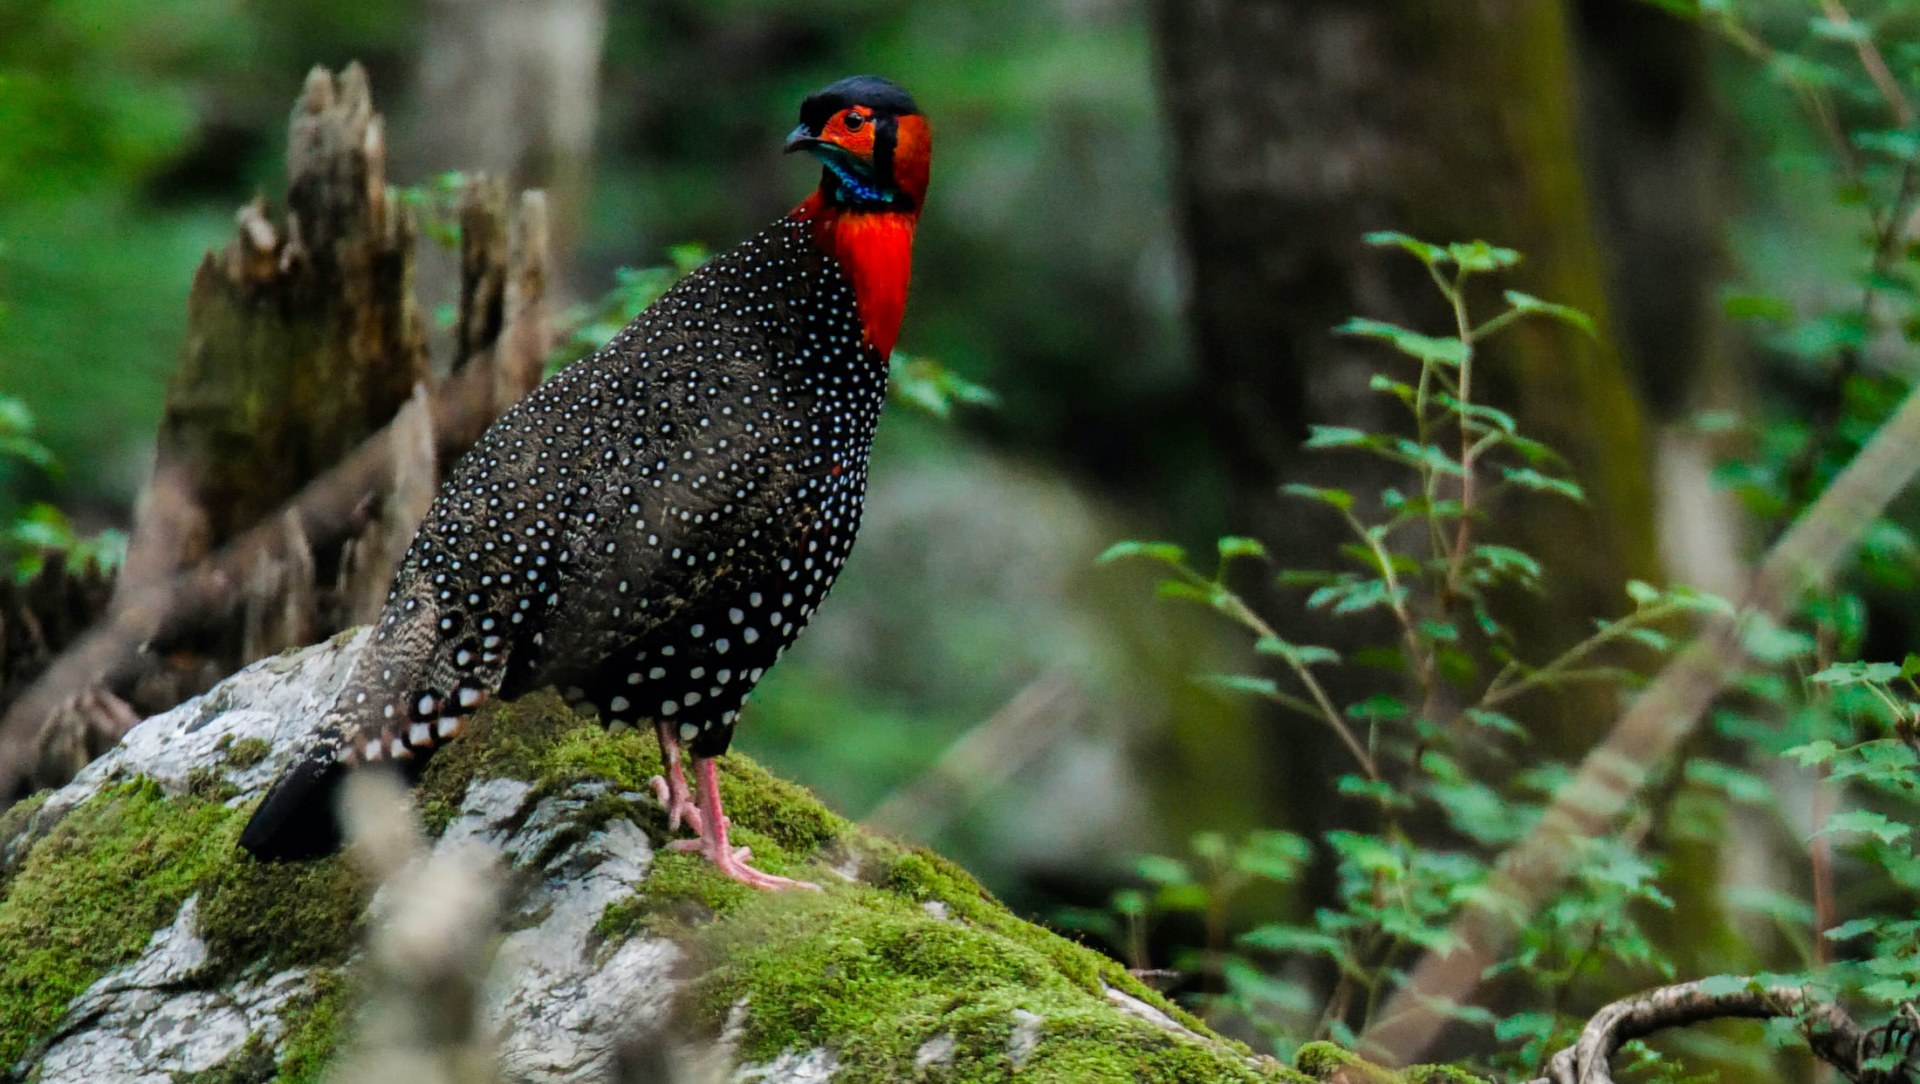 Western Tragopan: Quest for the Colourful Pheasant